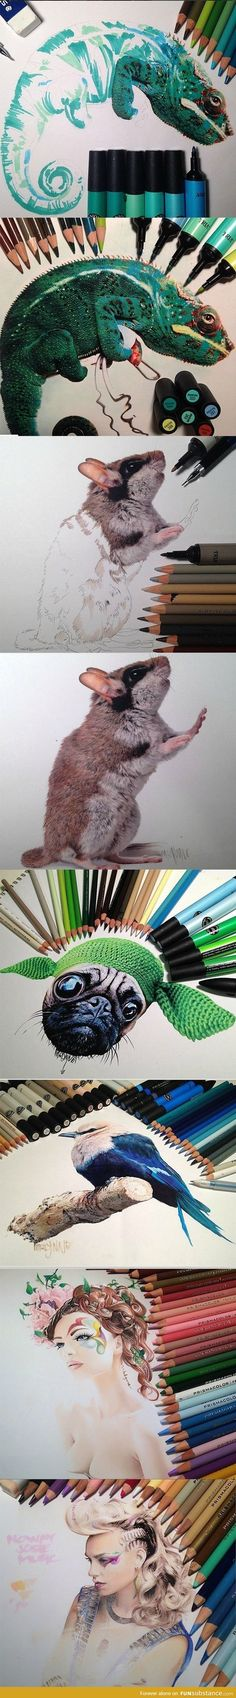 Photorealistic drawing skills